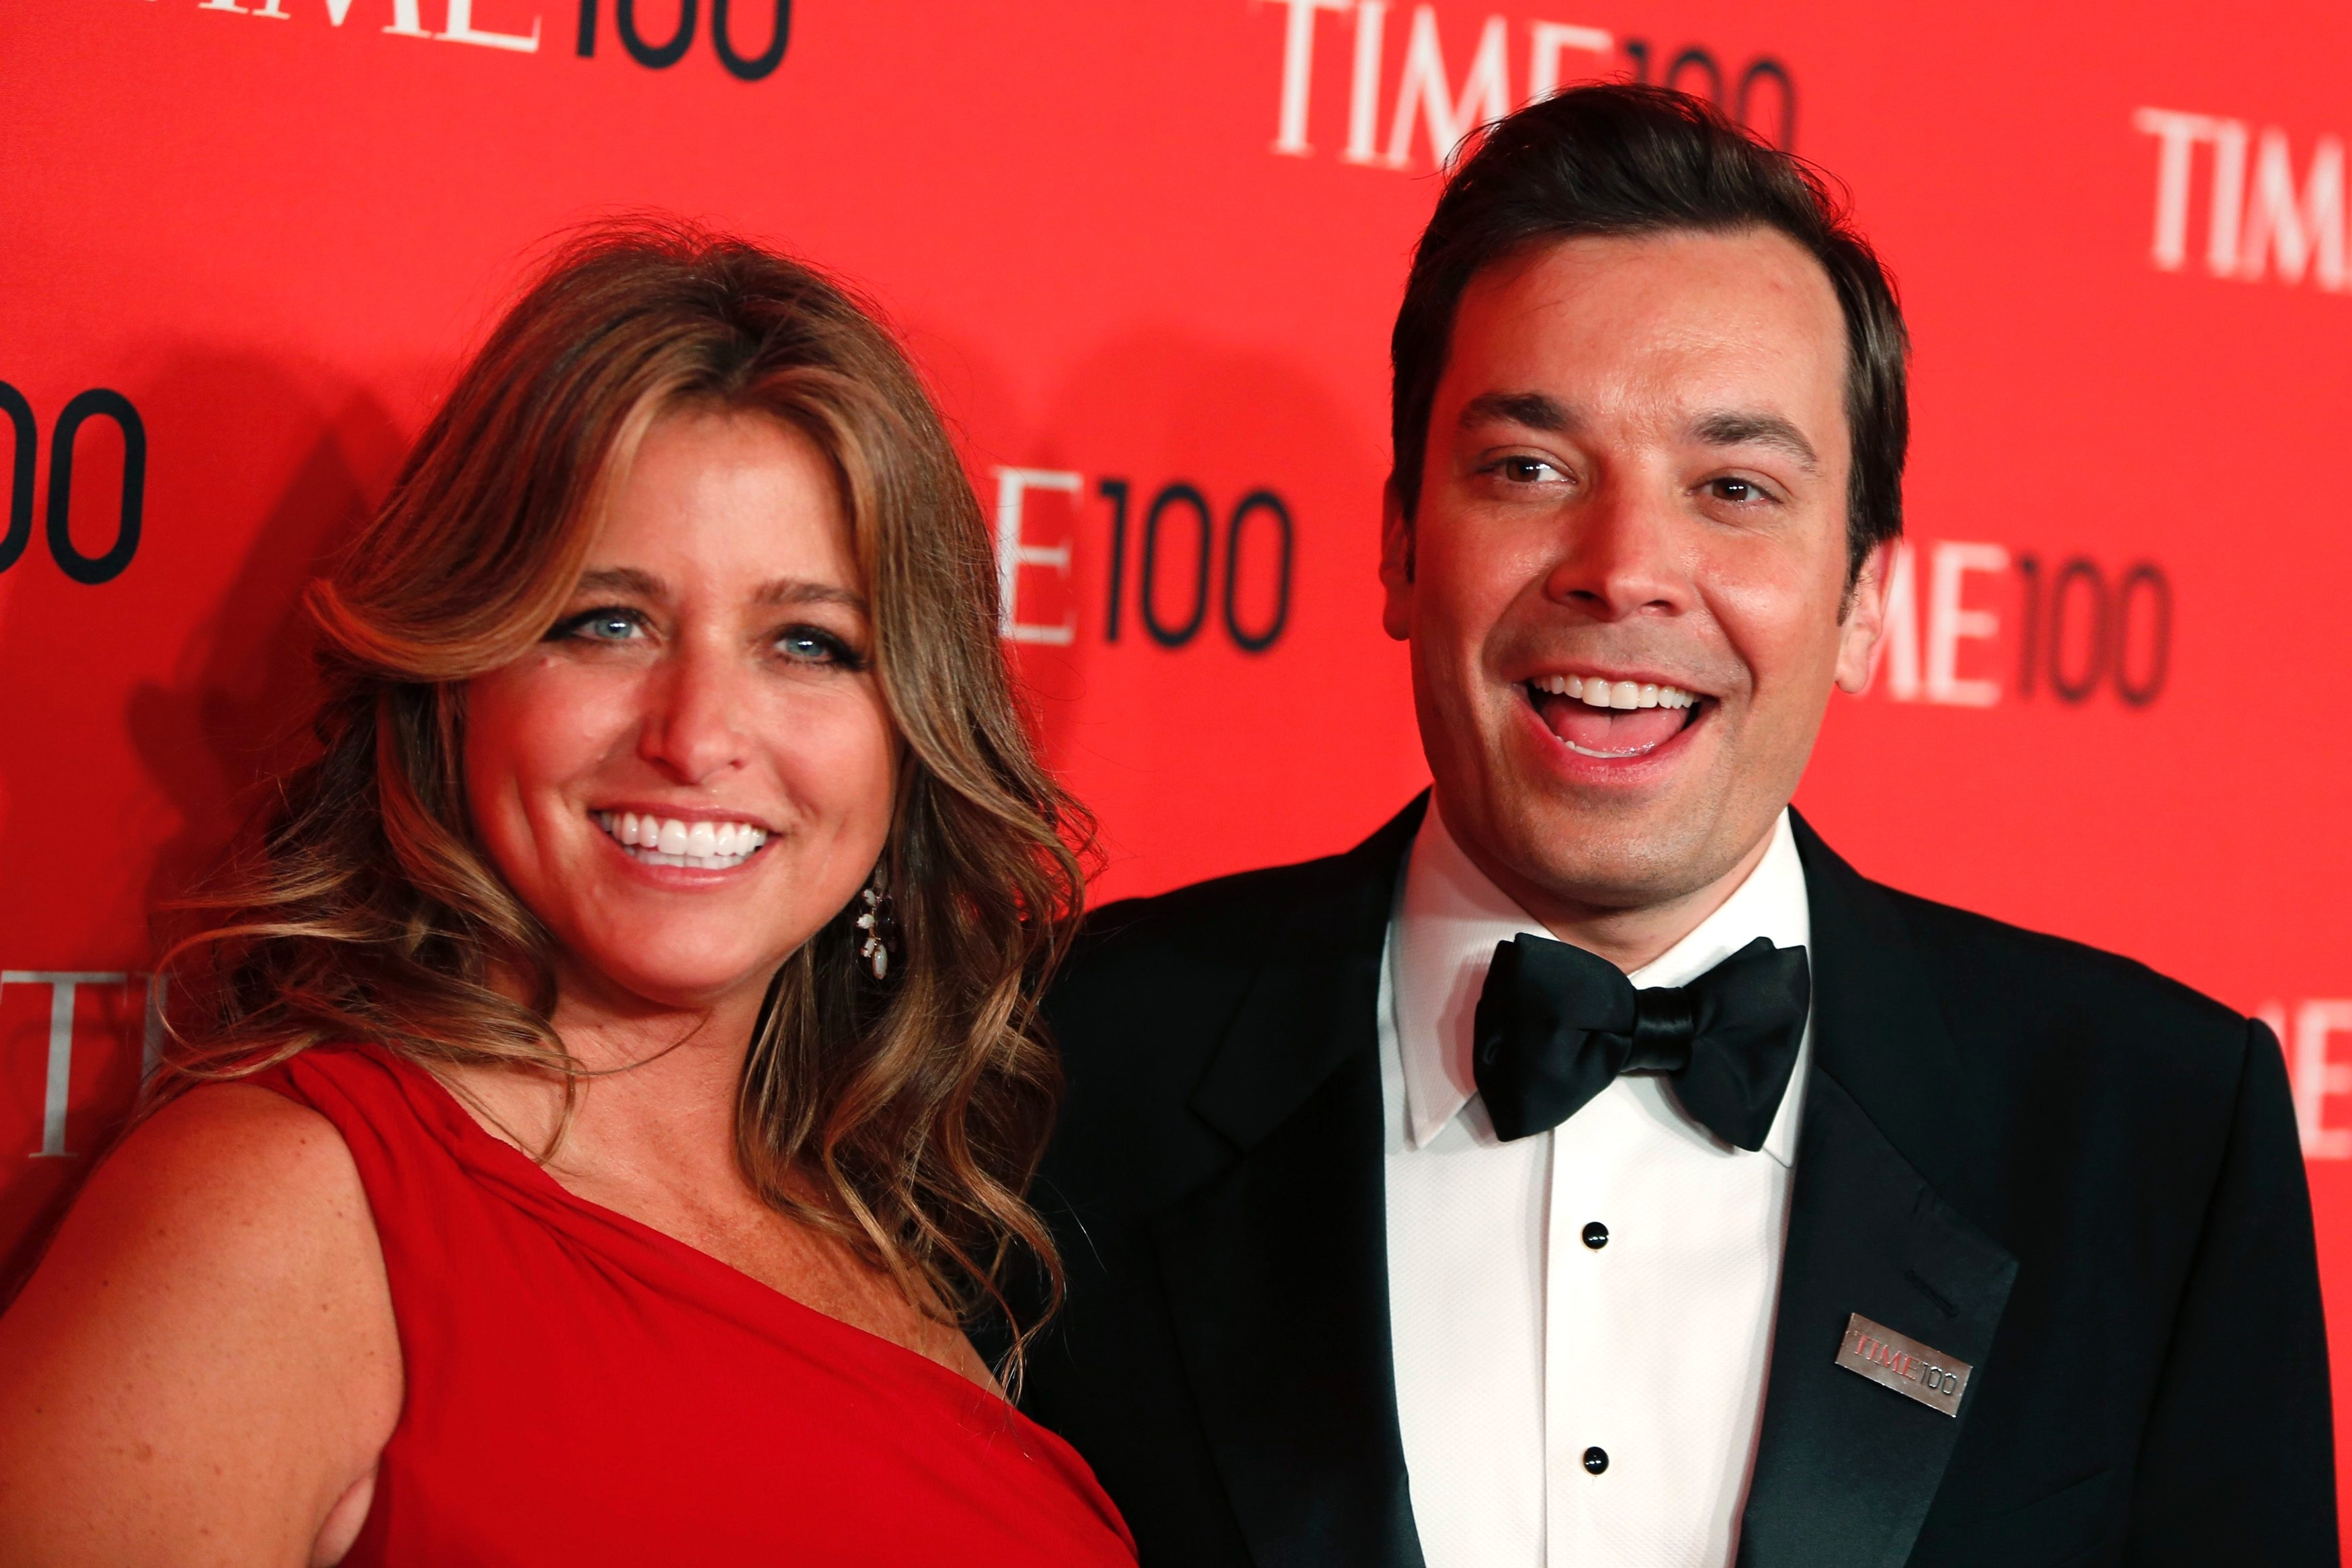 Jimmy Fallon father baby welcomes daughter girl wife surrogate pregnant